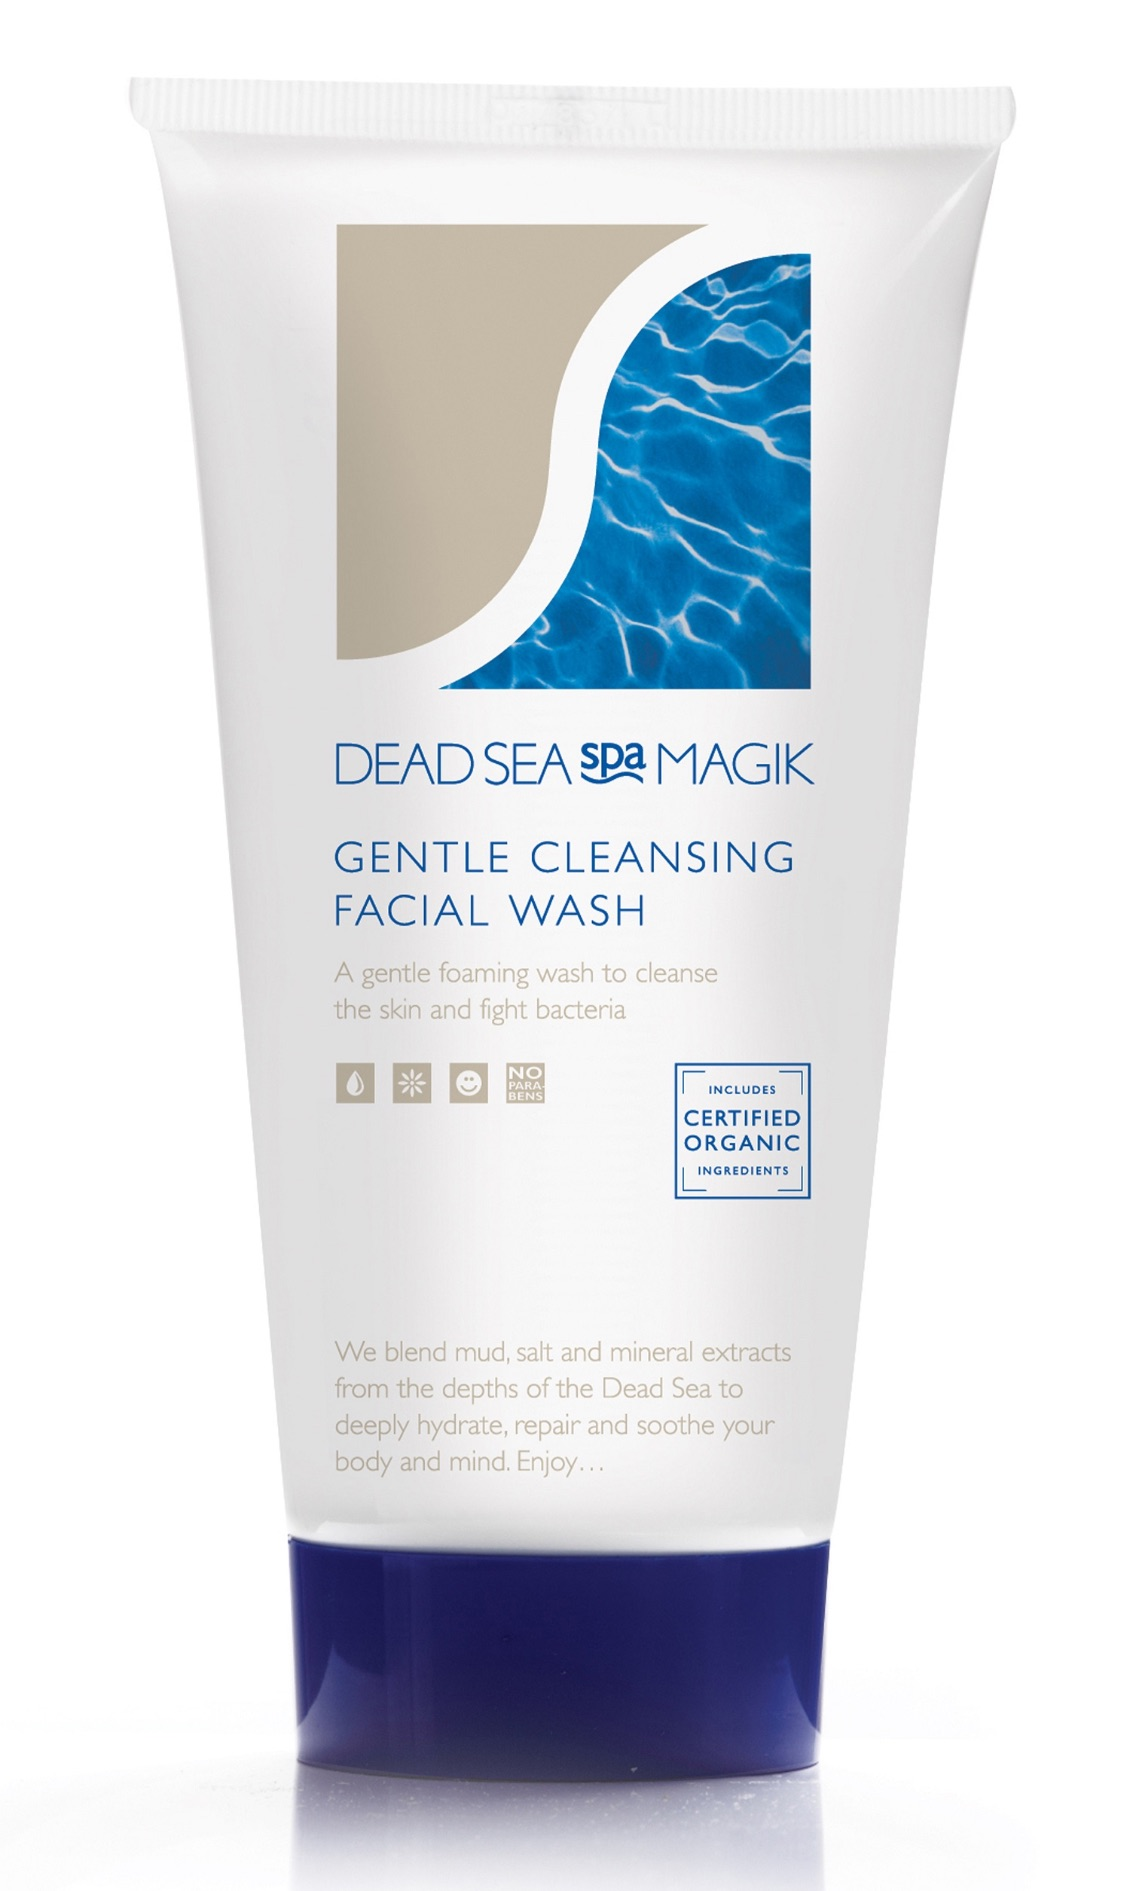 Dead Sea Spa Magik Gentle Cleansing Facial Wash 5.3oz (150ml)